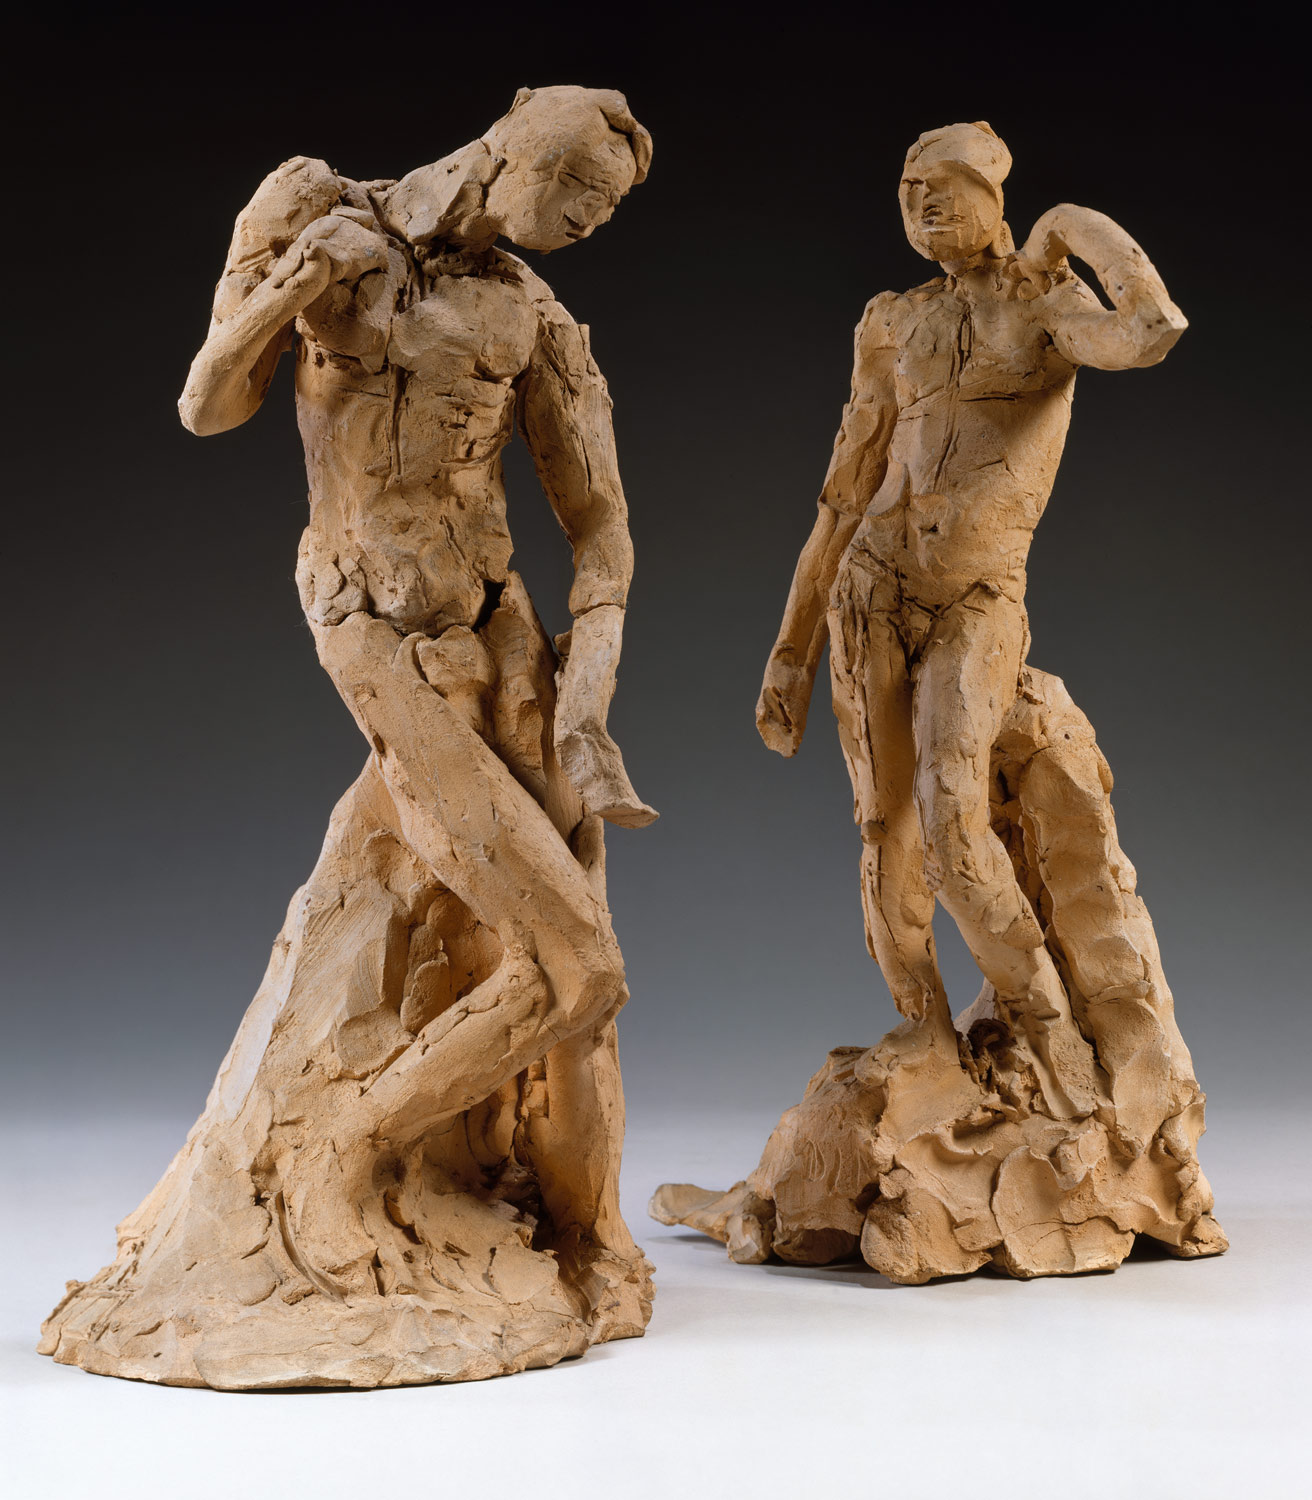 pair of standing nude male figures demonstrating the principles of  pair of standing nude male figures demonstrating the principles of contrapposto according to michelangelo and phidias